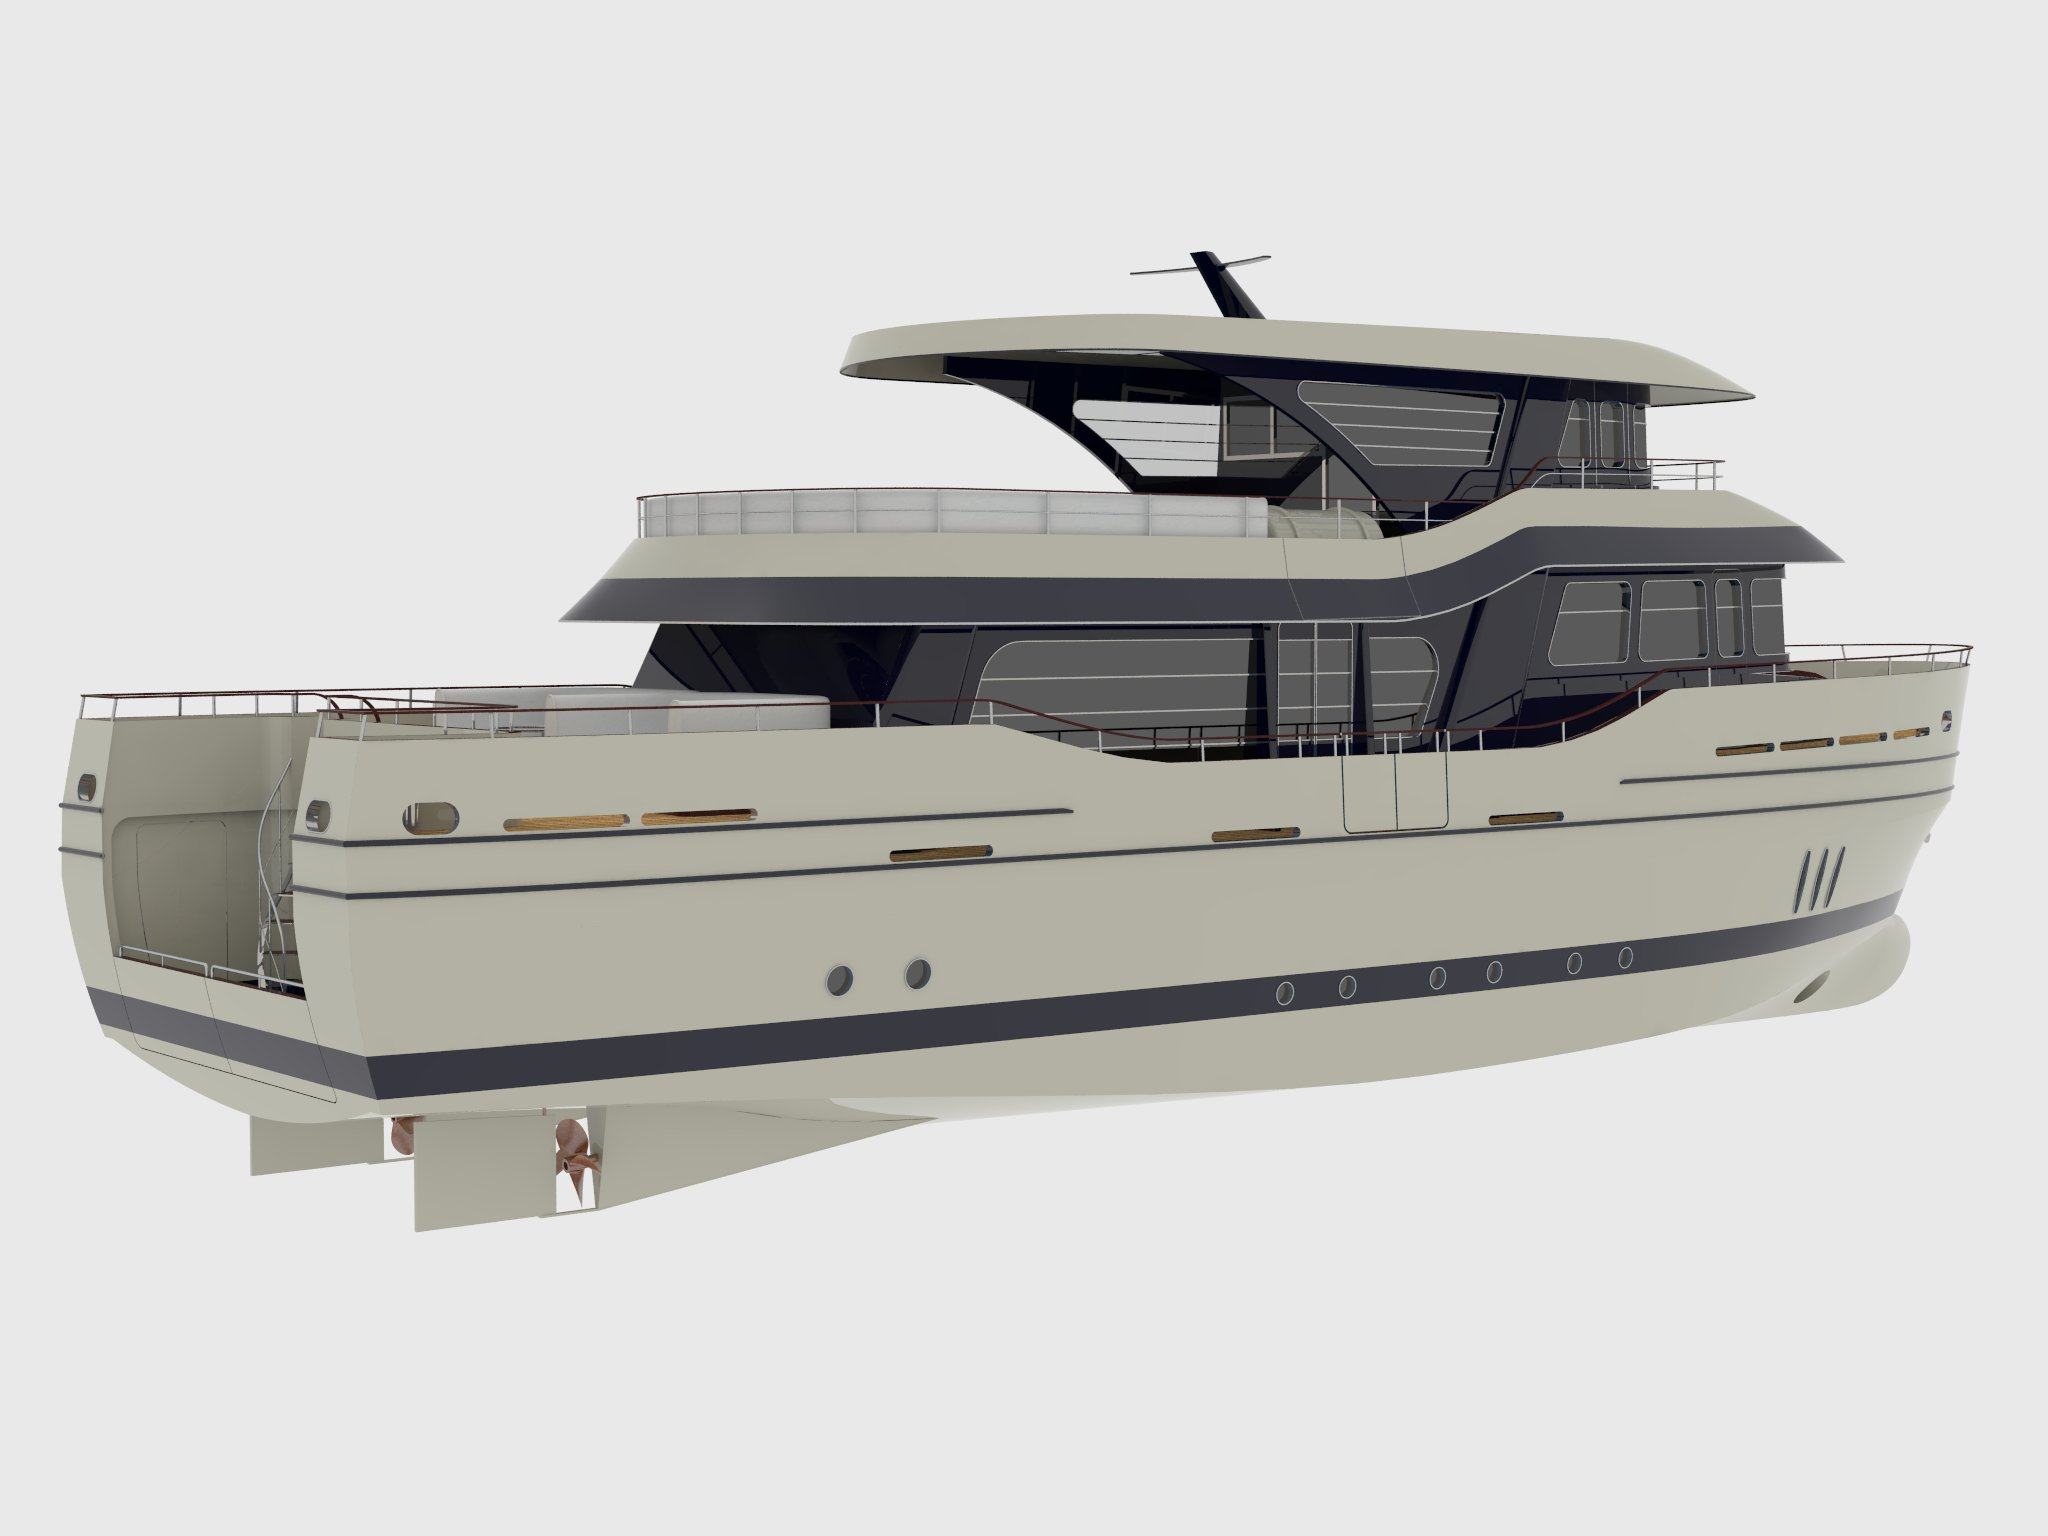 24m fishing motor boat - perspective view 3